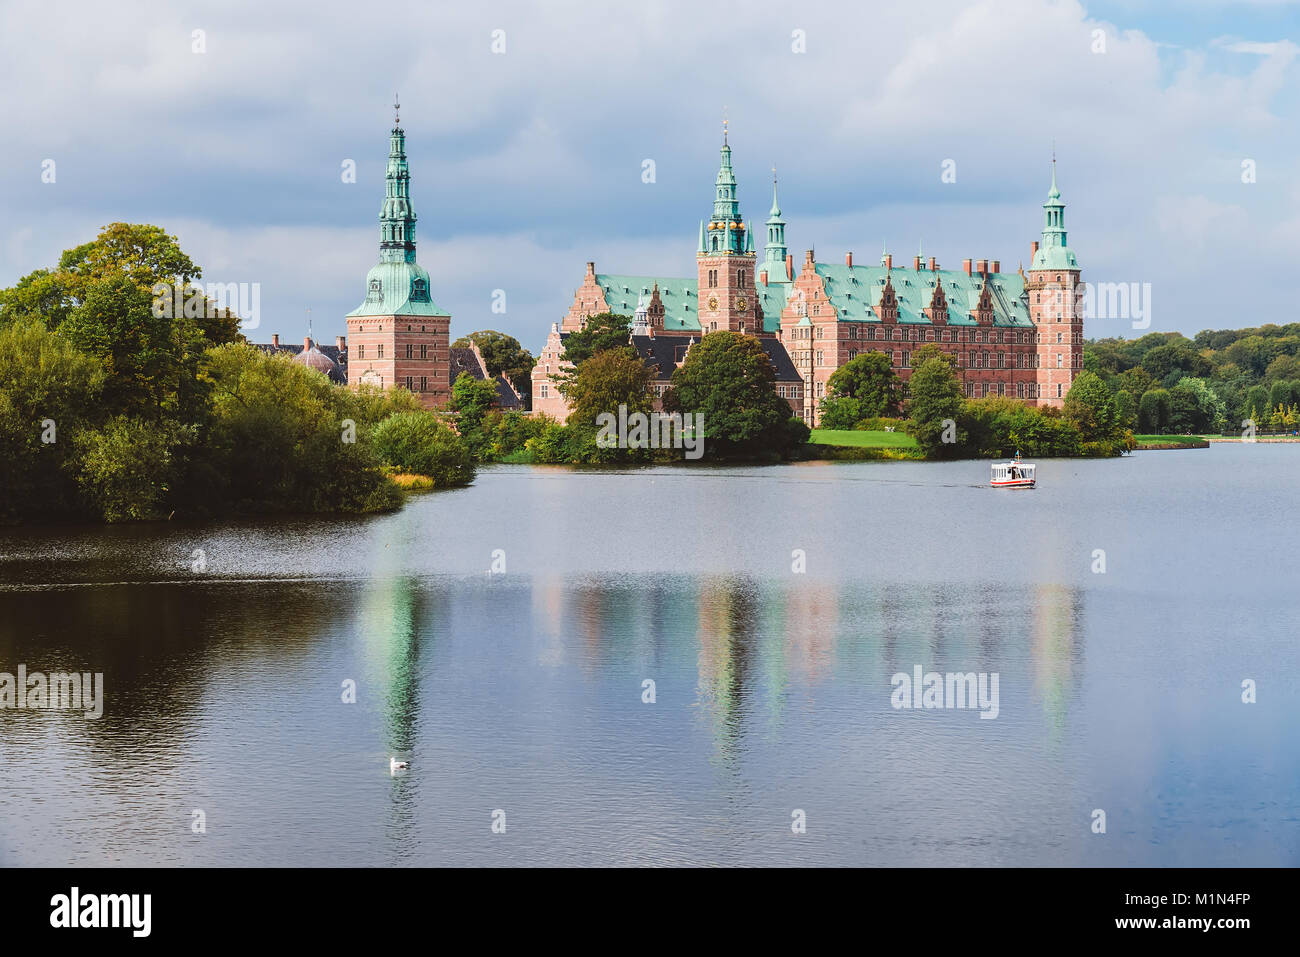 Frederiksborg castle reflected in the lake in Hillerod, Denmark. Renaissance castle and romantic lake near Copenhagen. - Stock Image